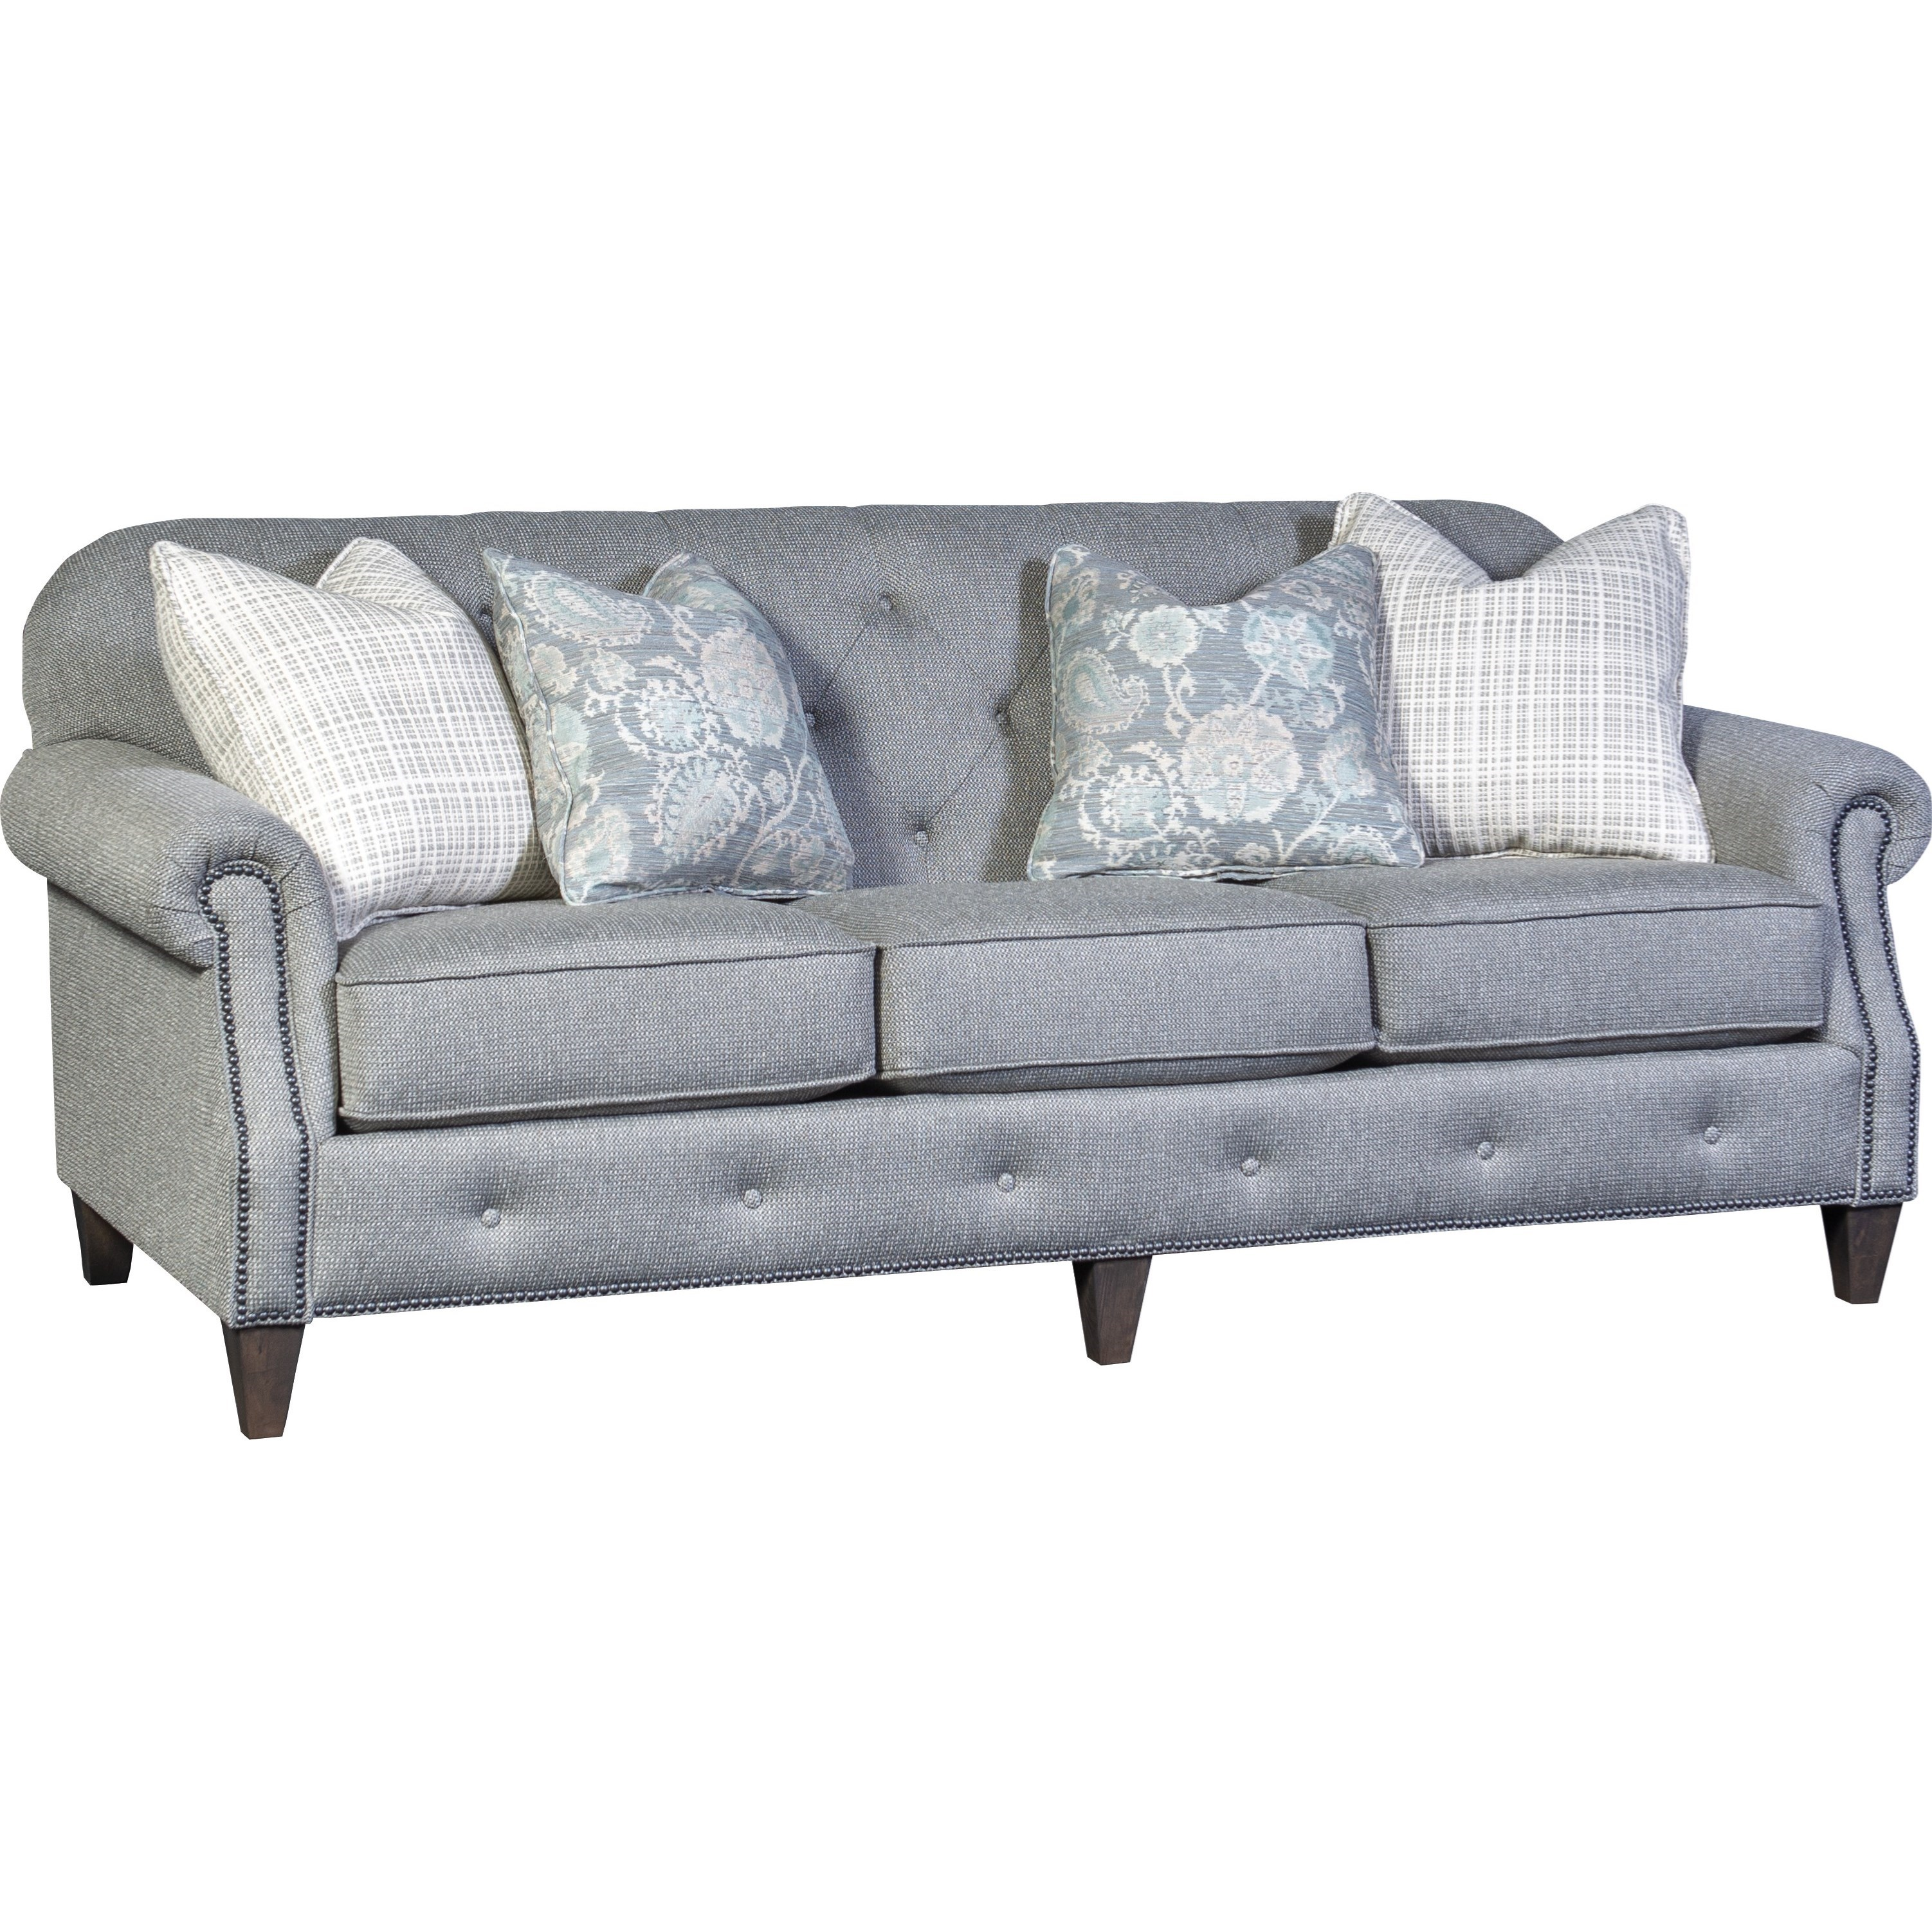 2262 Sofa by Mayo at Wilson's Furniture